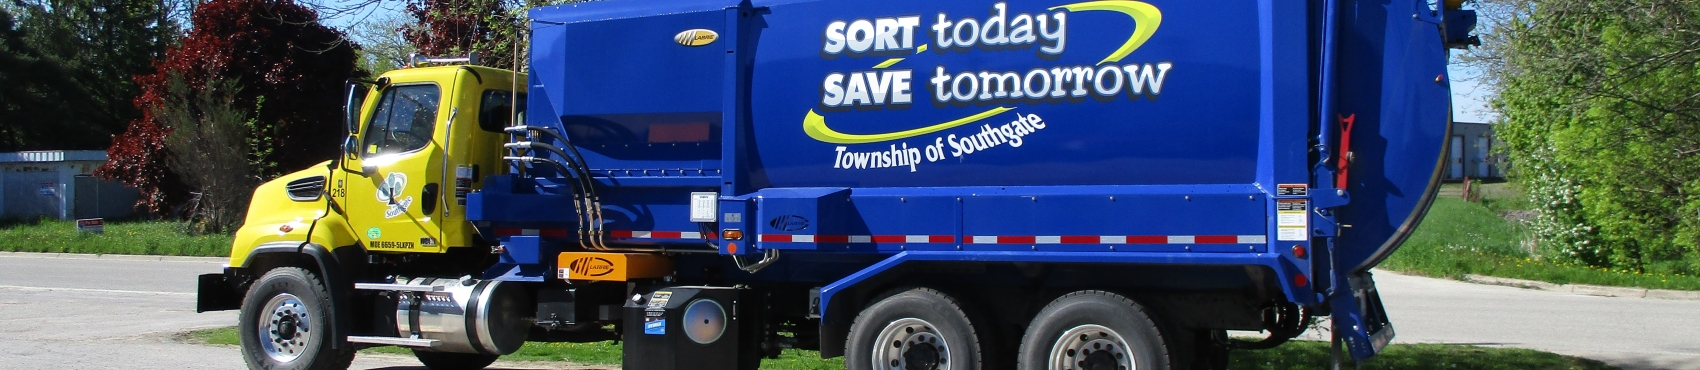 A southgate recycling truck